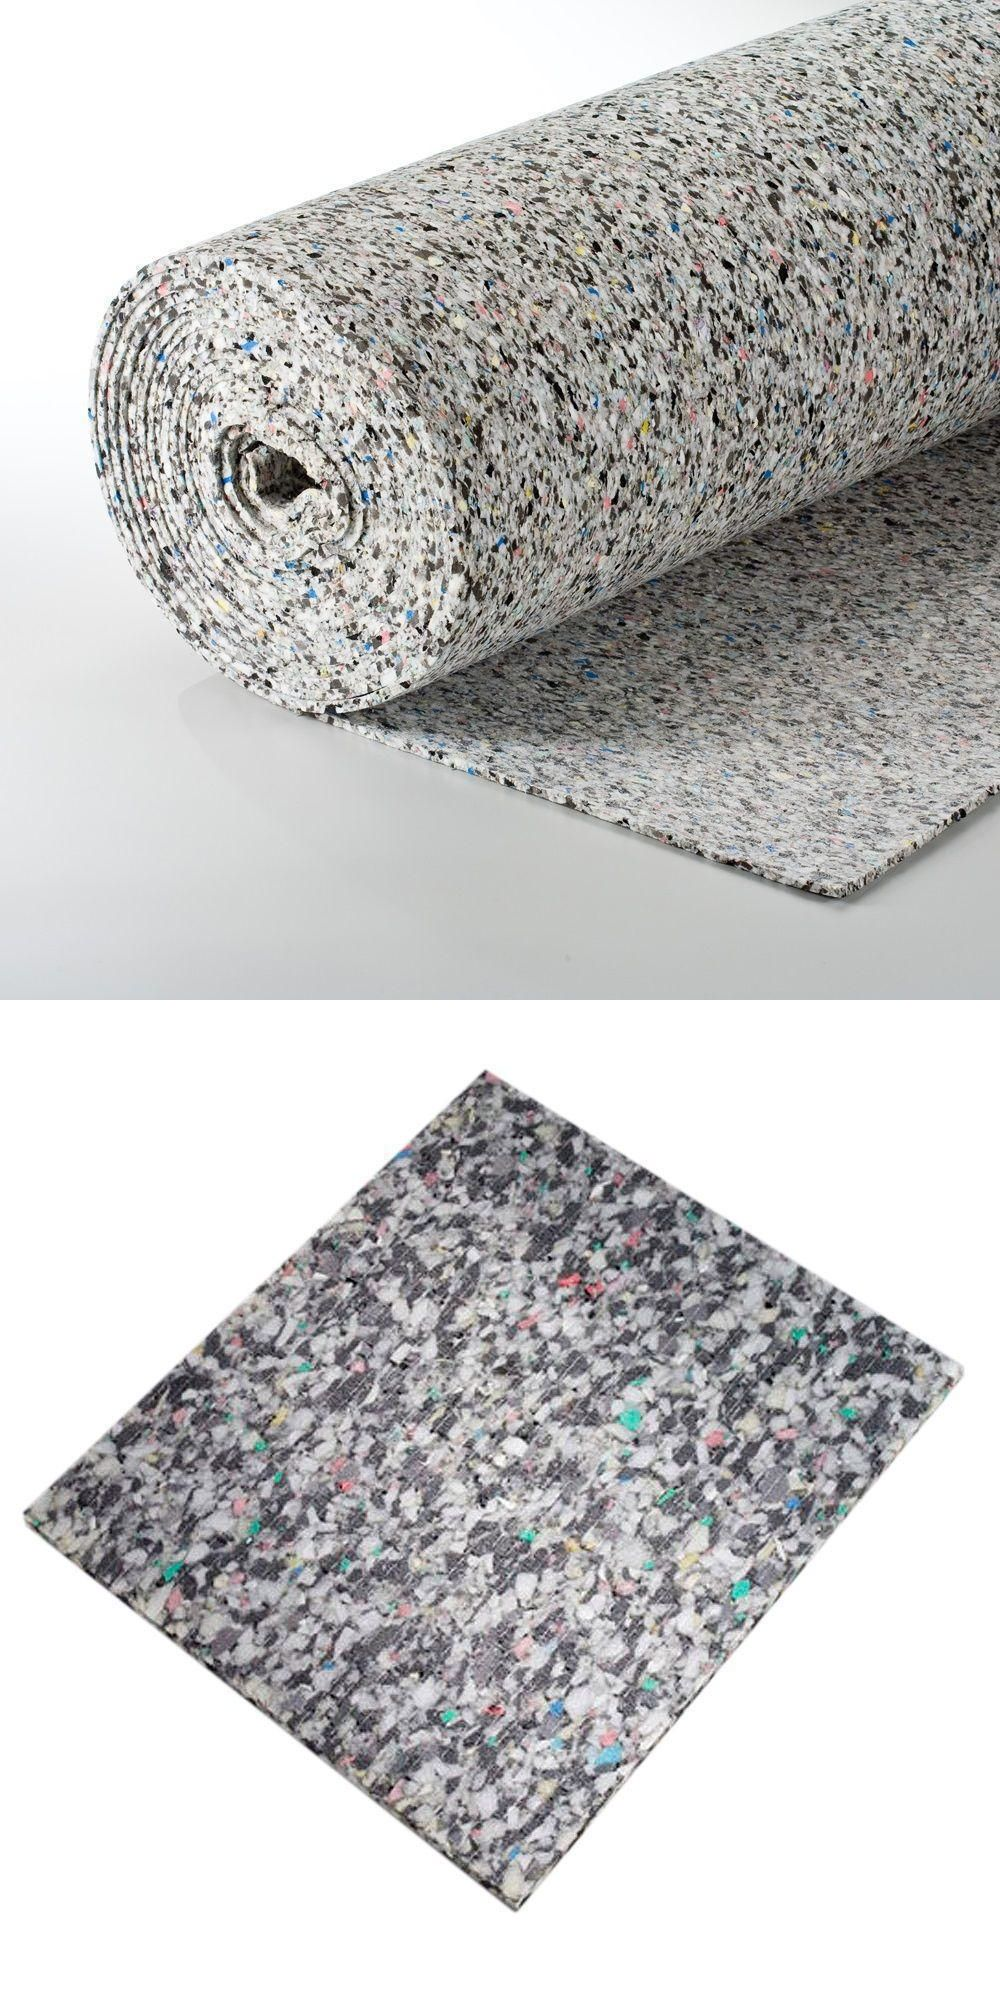 Rug Pads And Accessories 36956 Future Foam Flooring Contractor 3